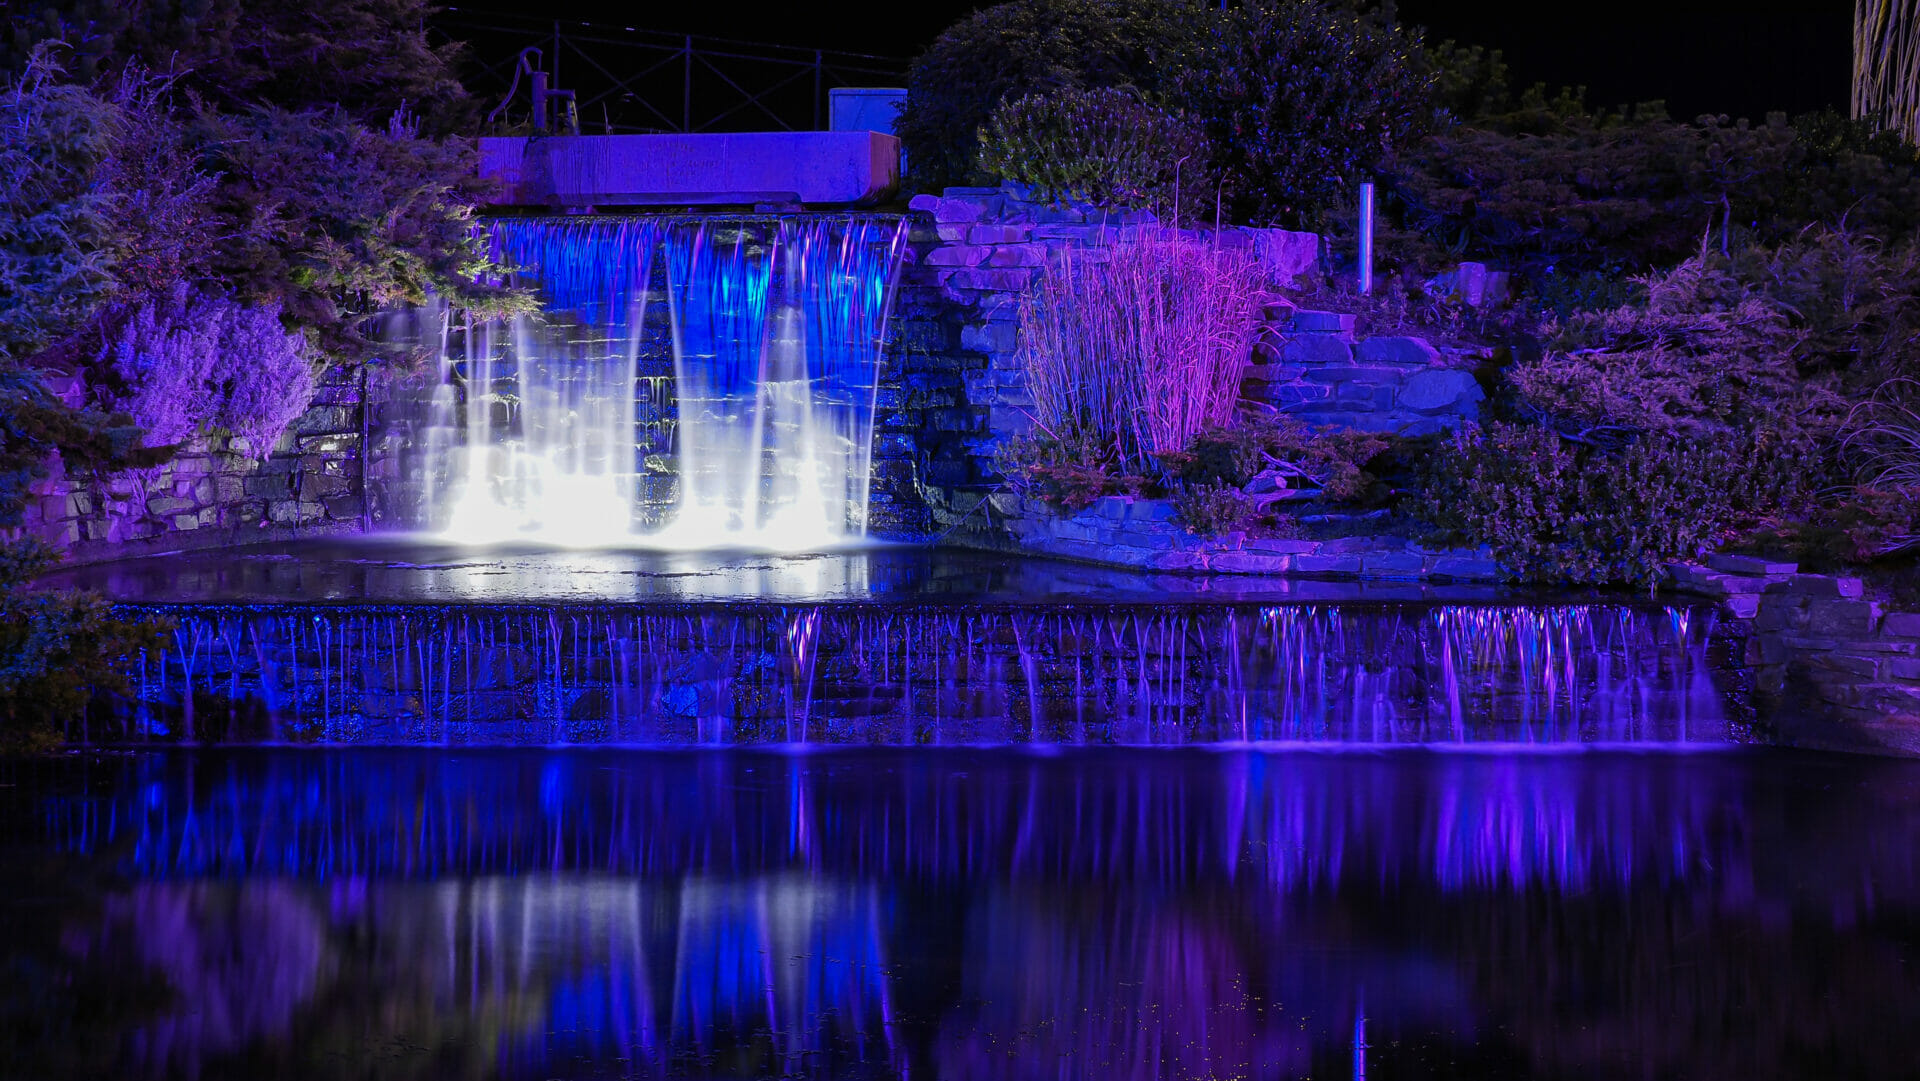 Photo of a man-made water feature in Rhyl, Norht Wales - shot at night in low-light with the coloured lights displaying